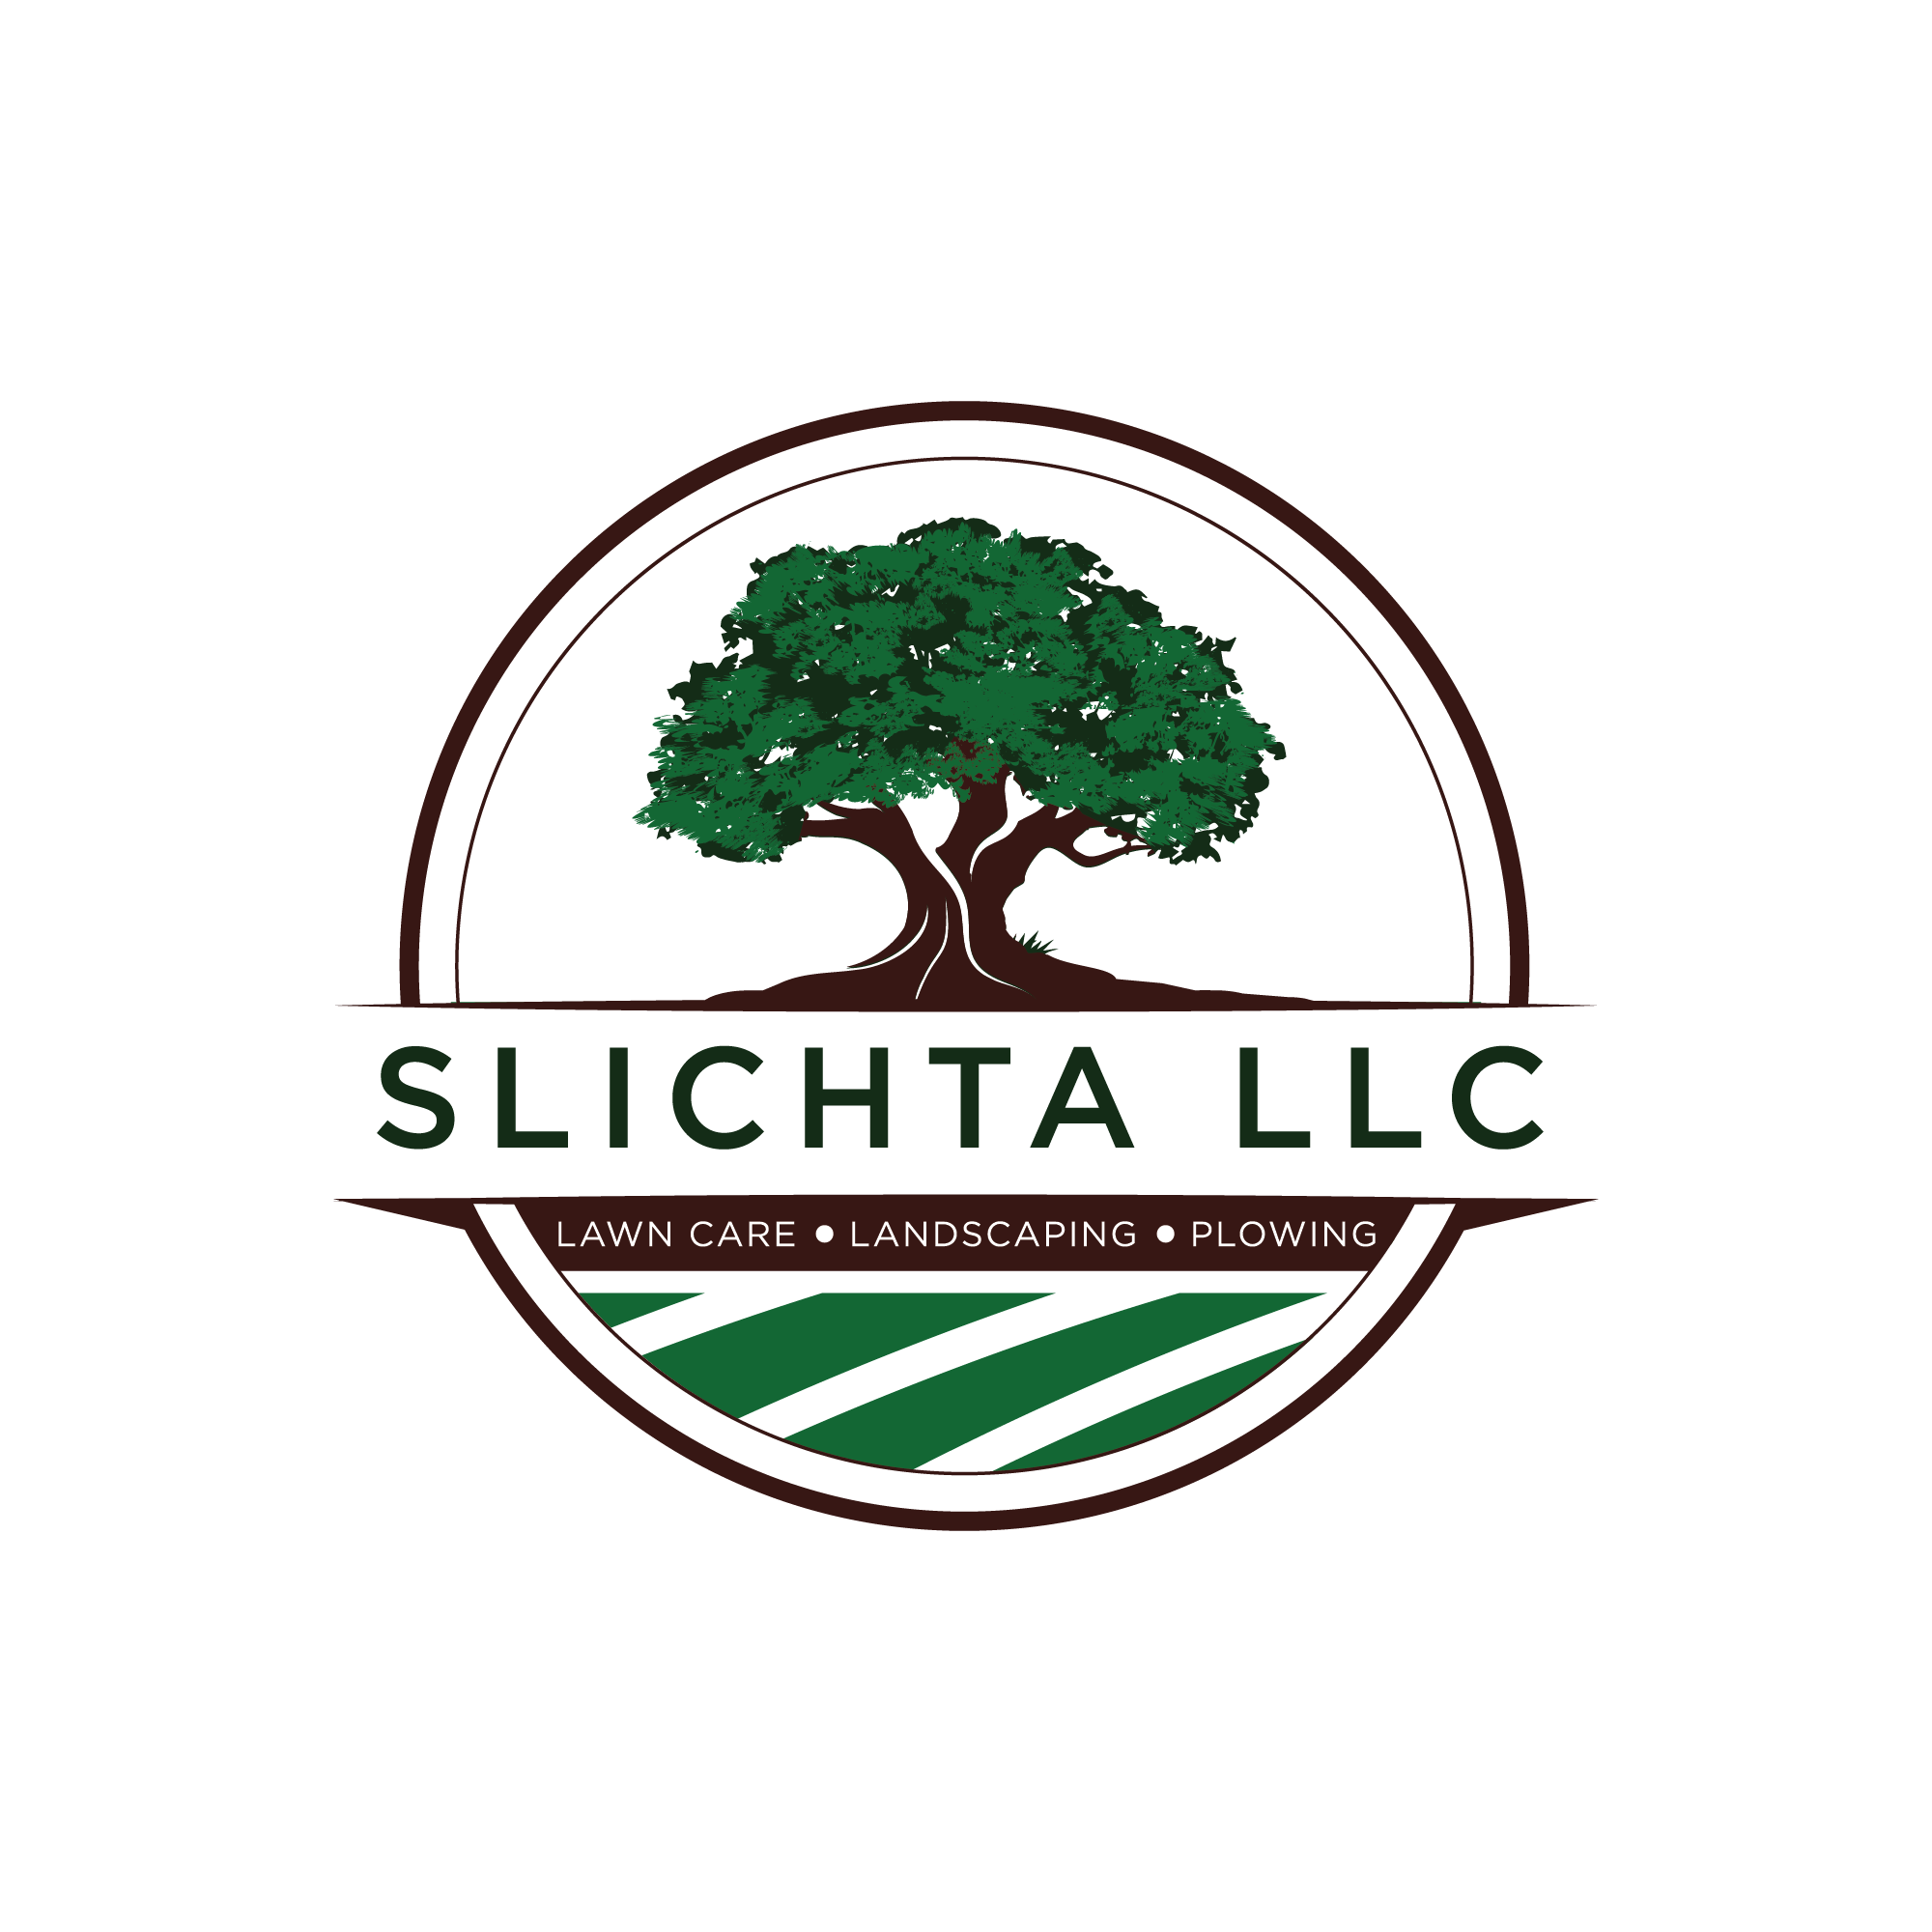 Landscaping business logo needed